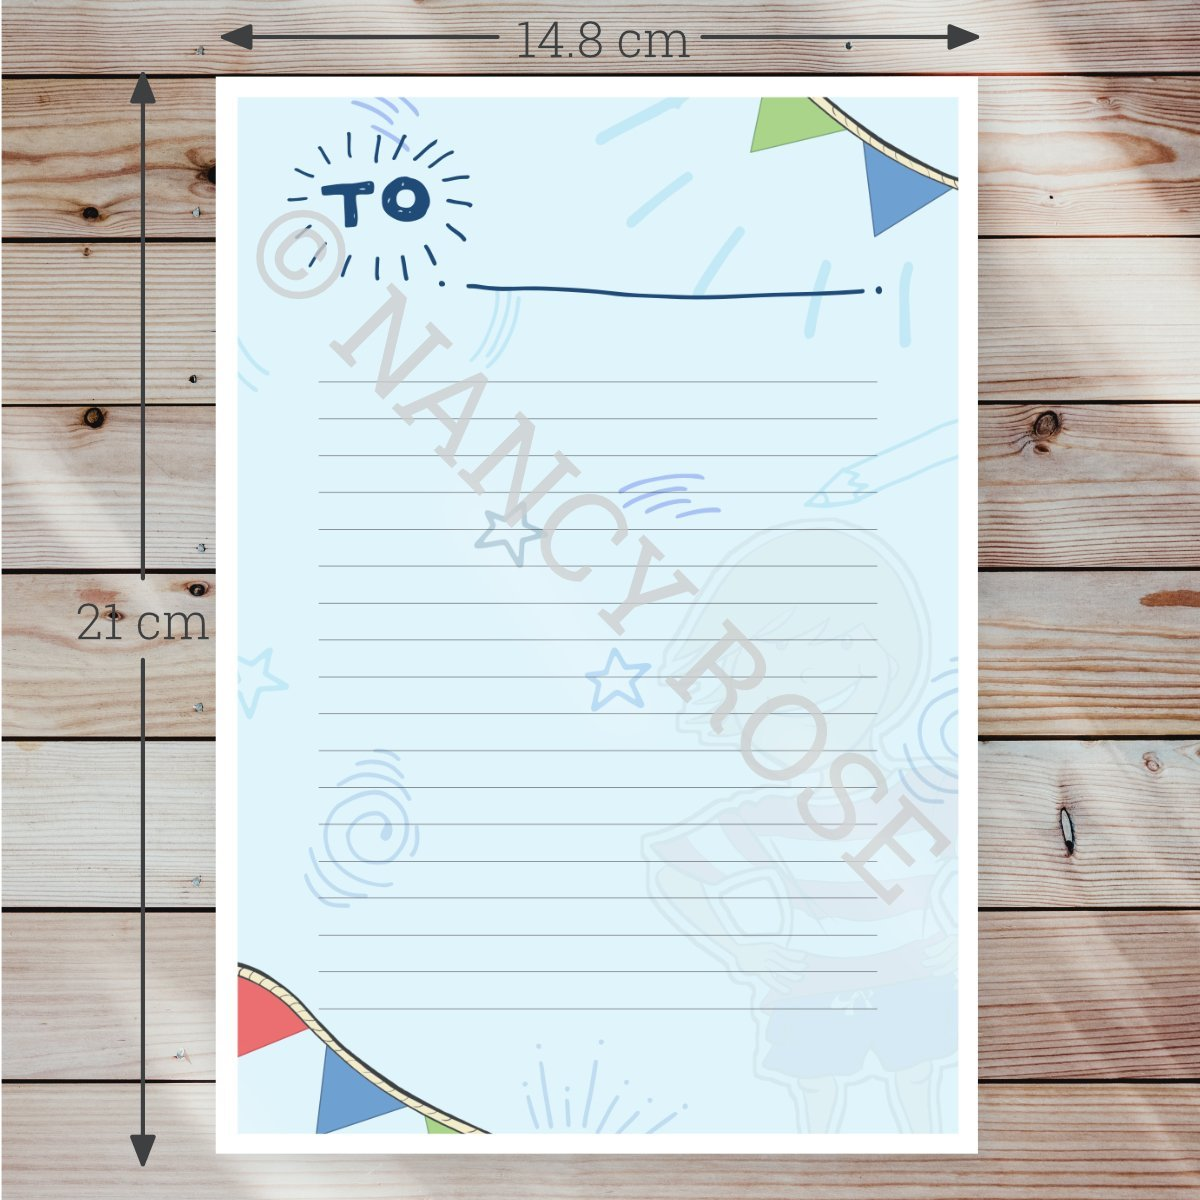 Skipp the Sailor letter paper with scale